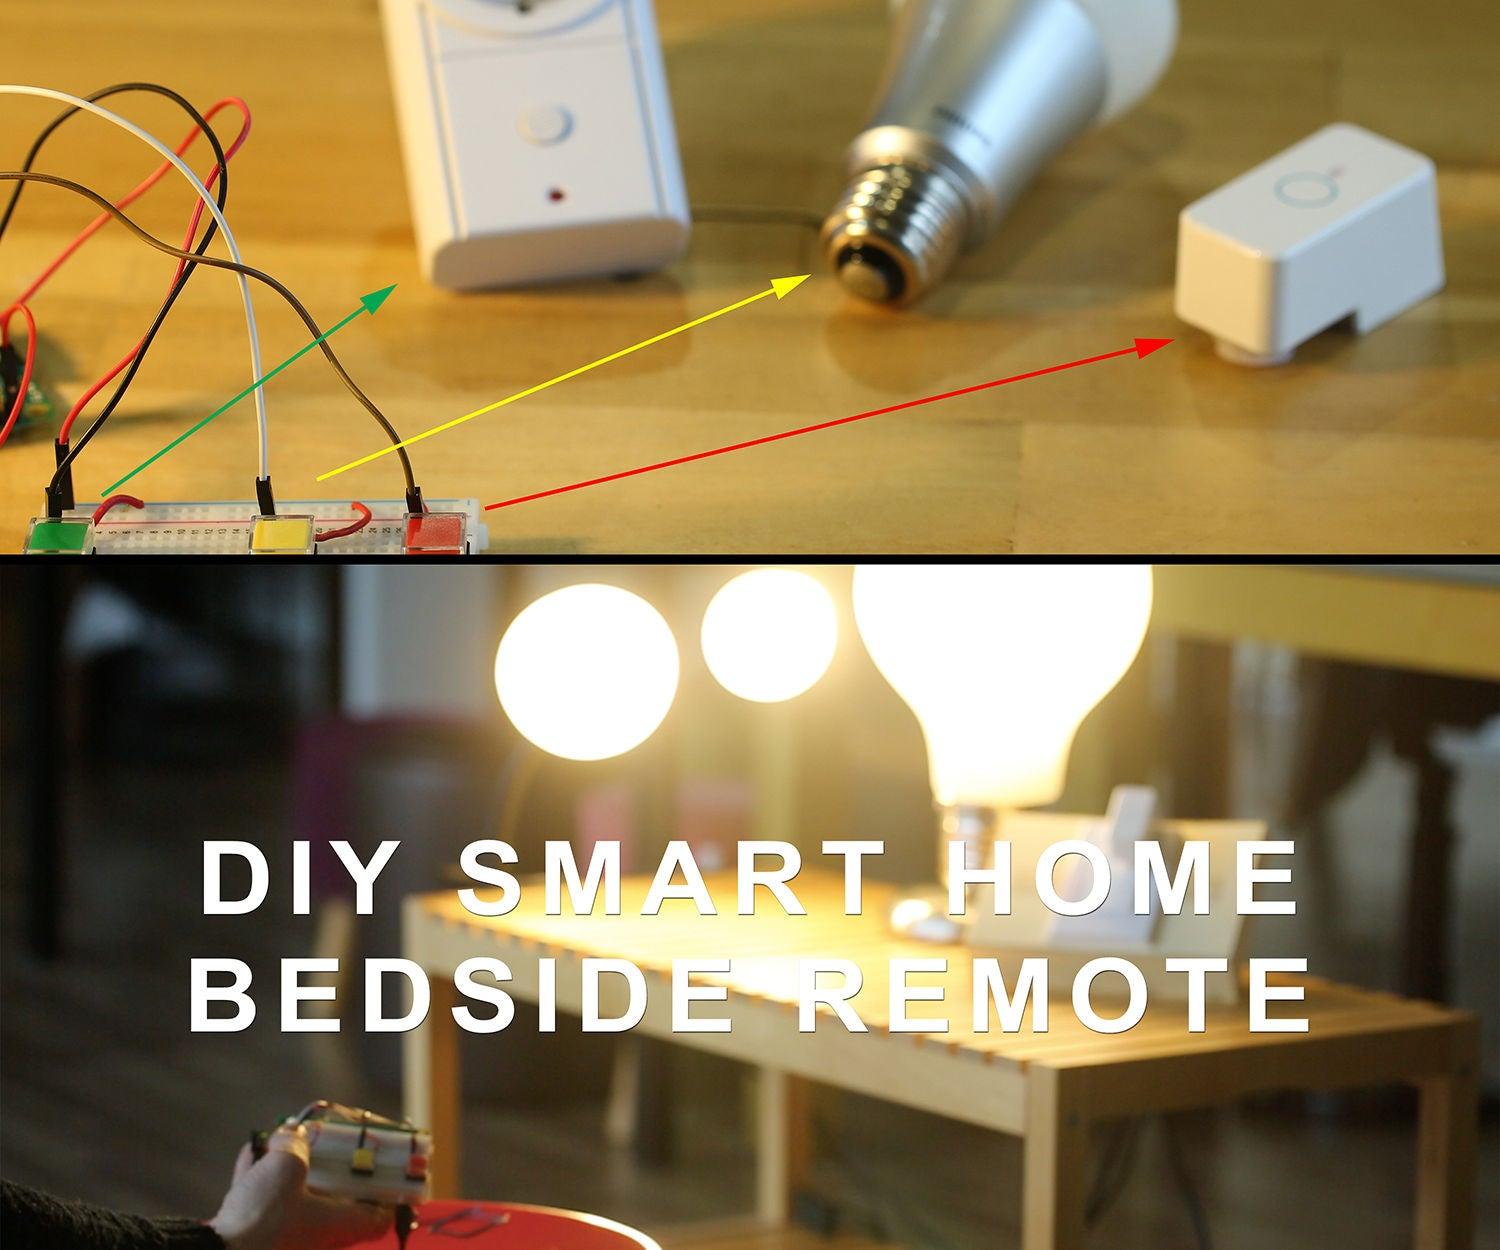 DIY Smart Home Bedside Remote: 8 Steps (with Pictures)